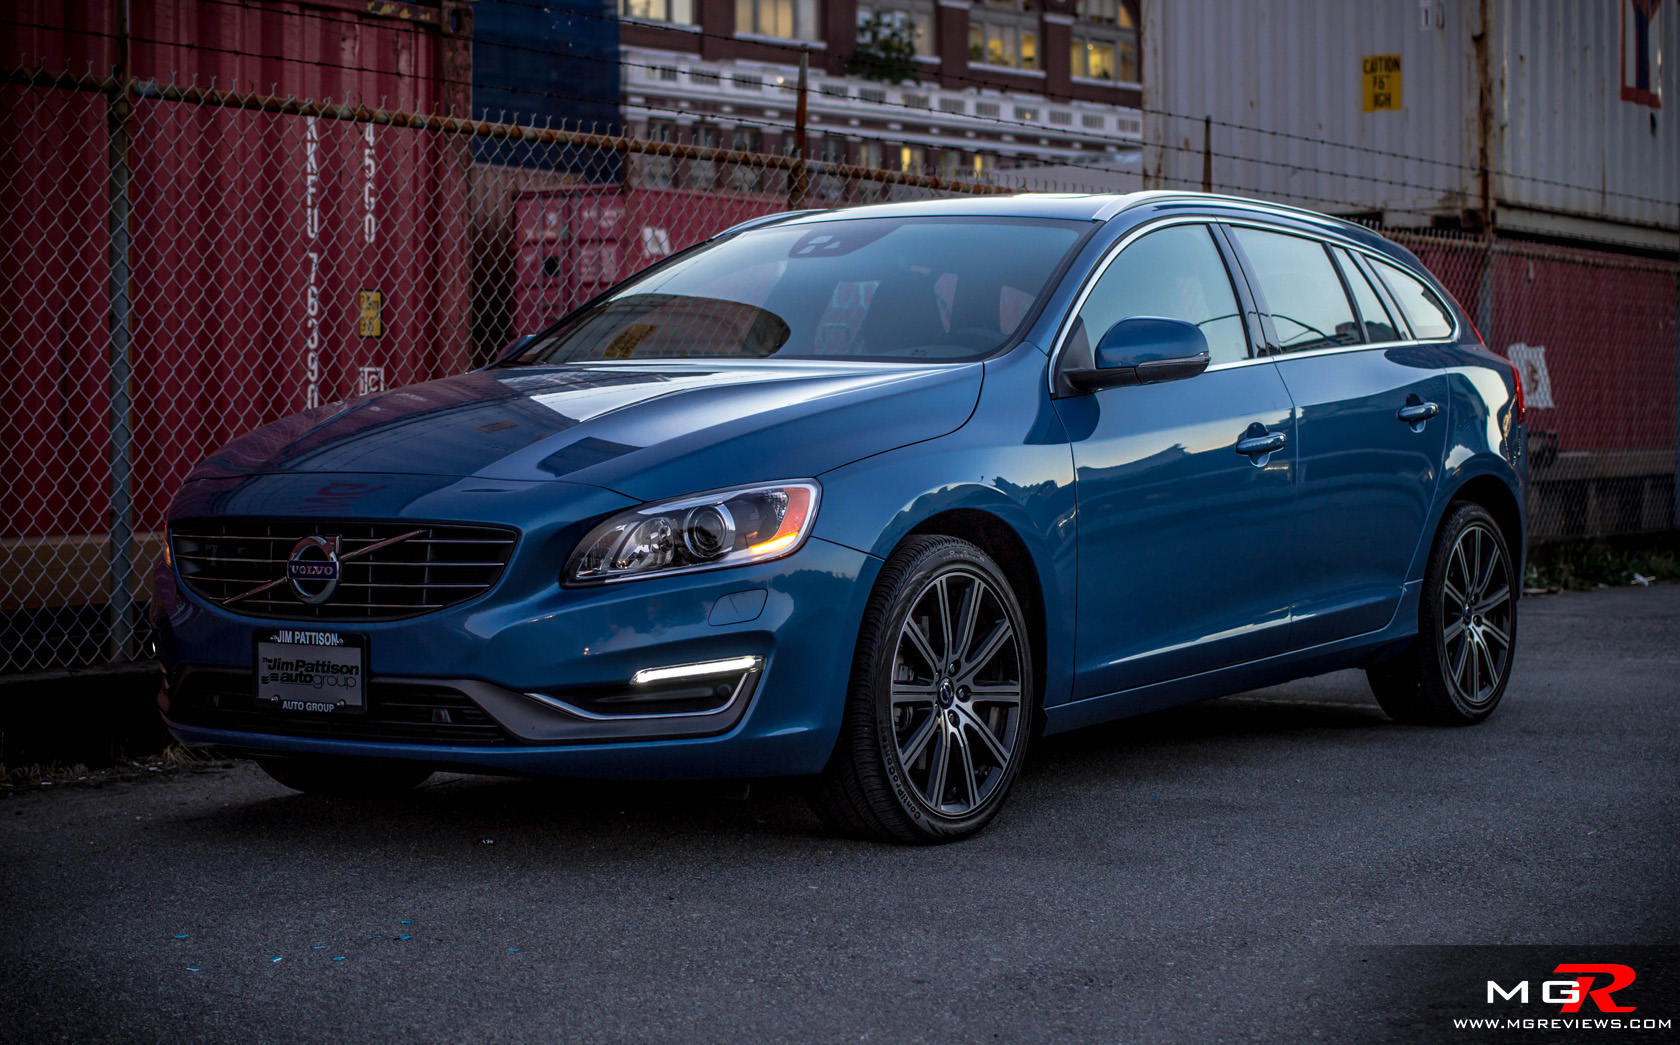 Cool Review 2015 Volvo V60 T6 AWD  MG Reviews